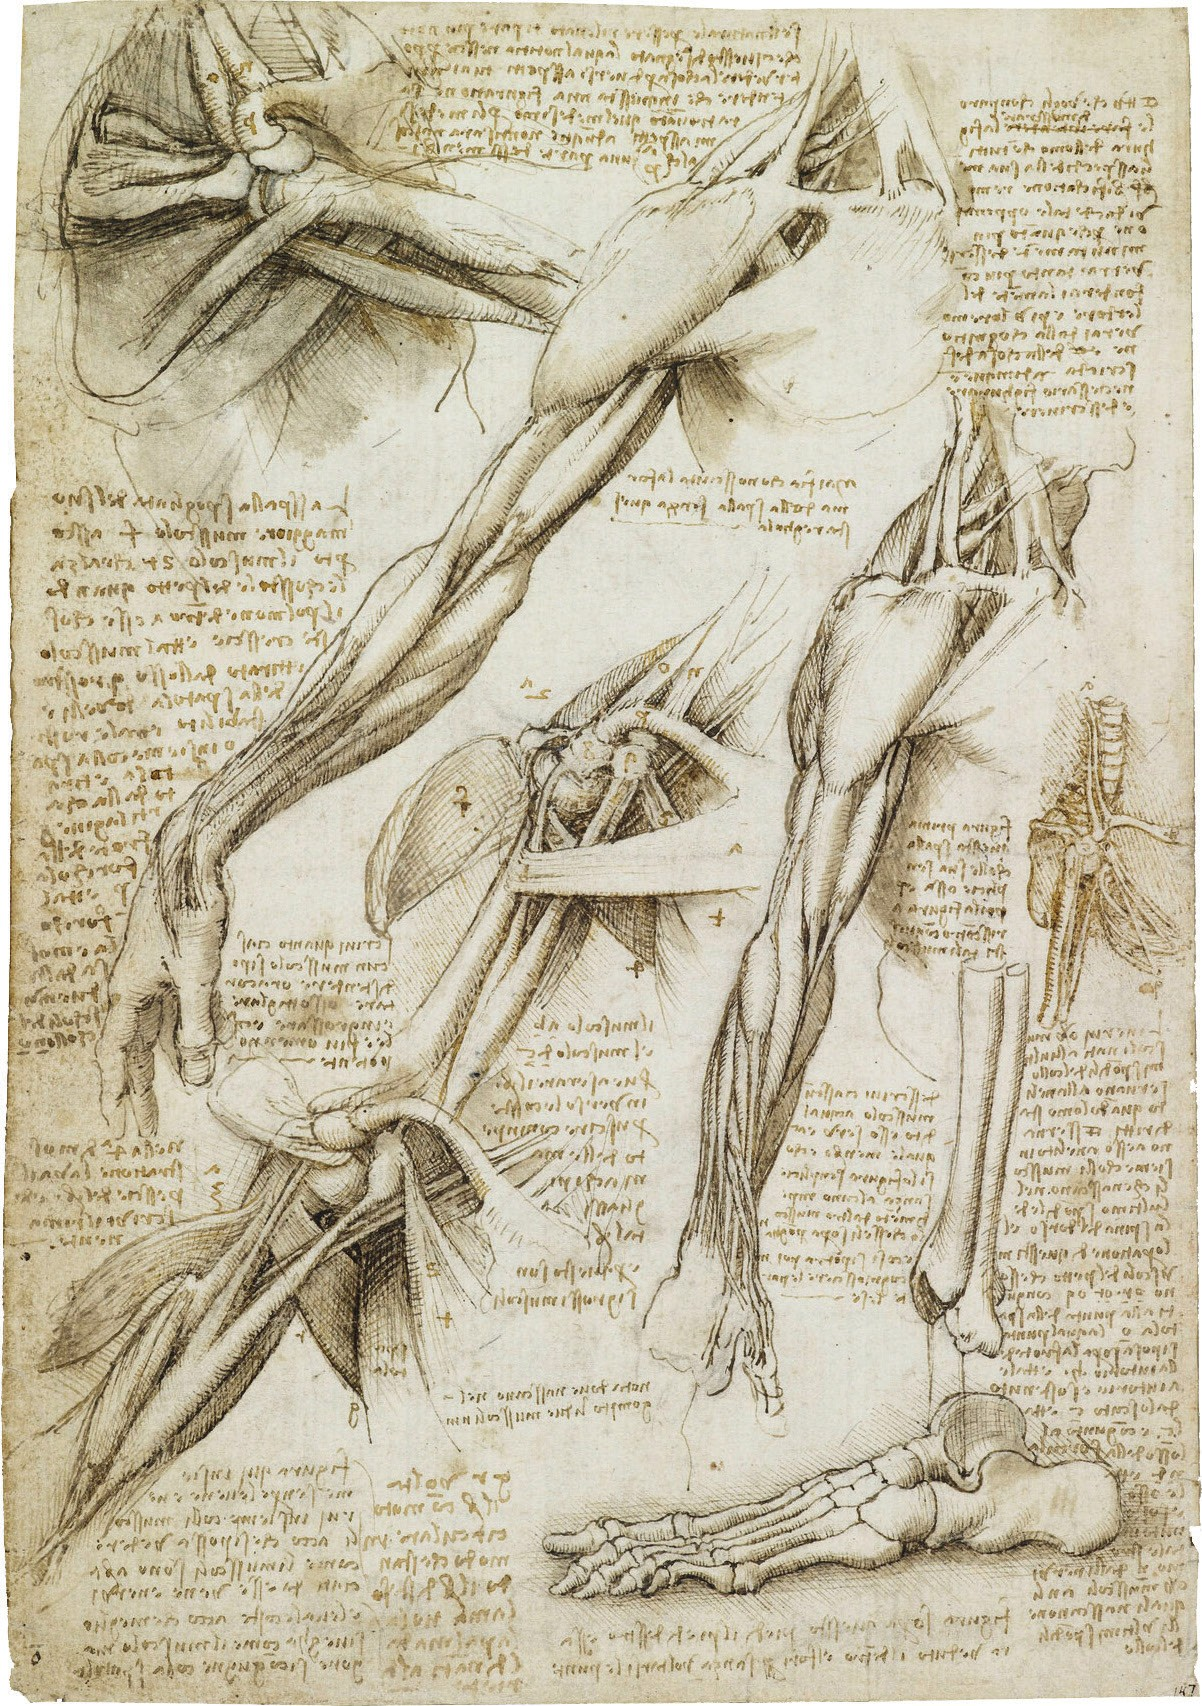 Anatomical studies of muscles of the arm and shoulder, bones of the foot